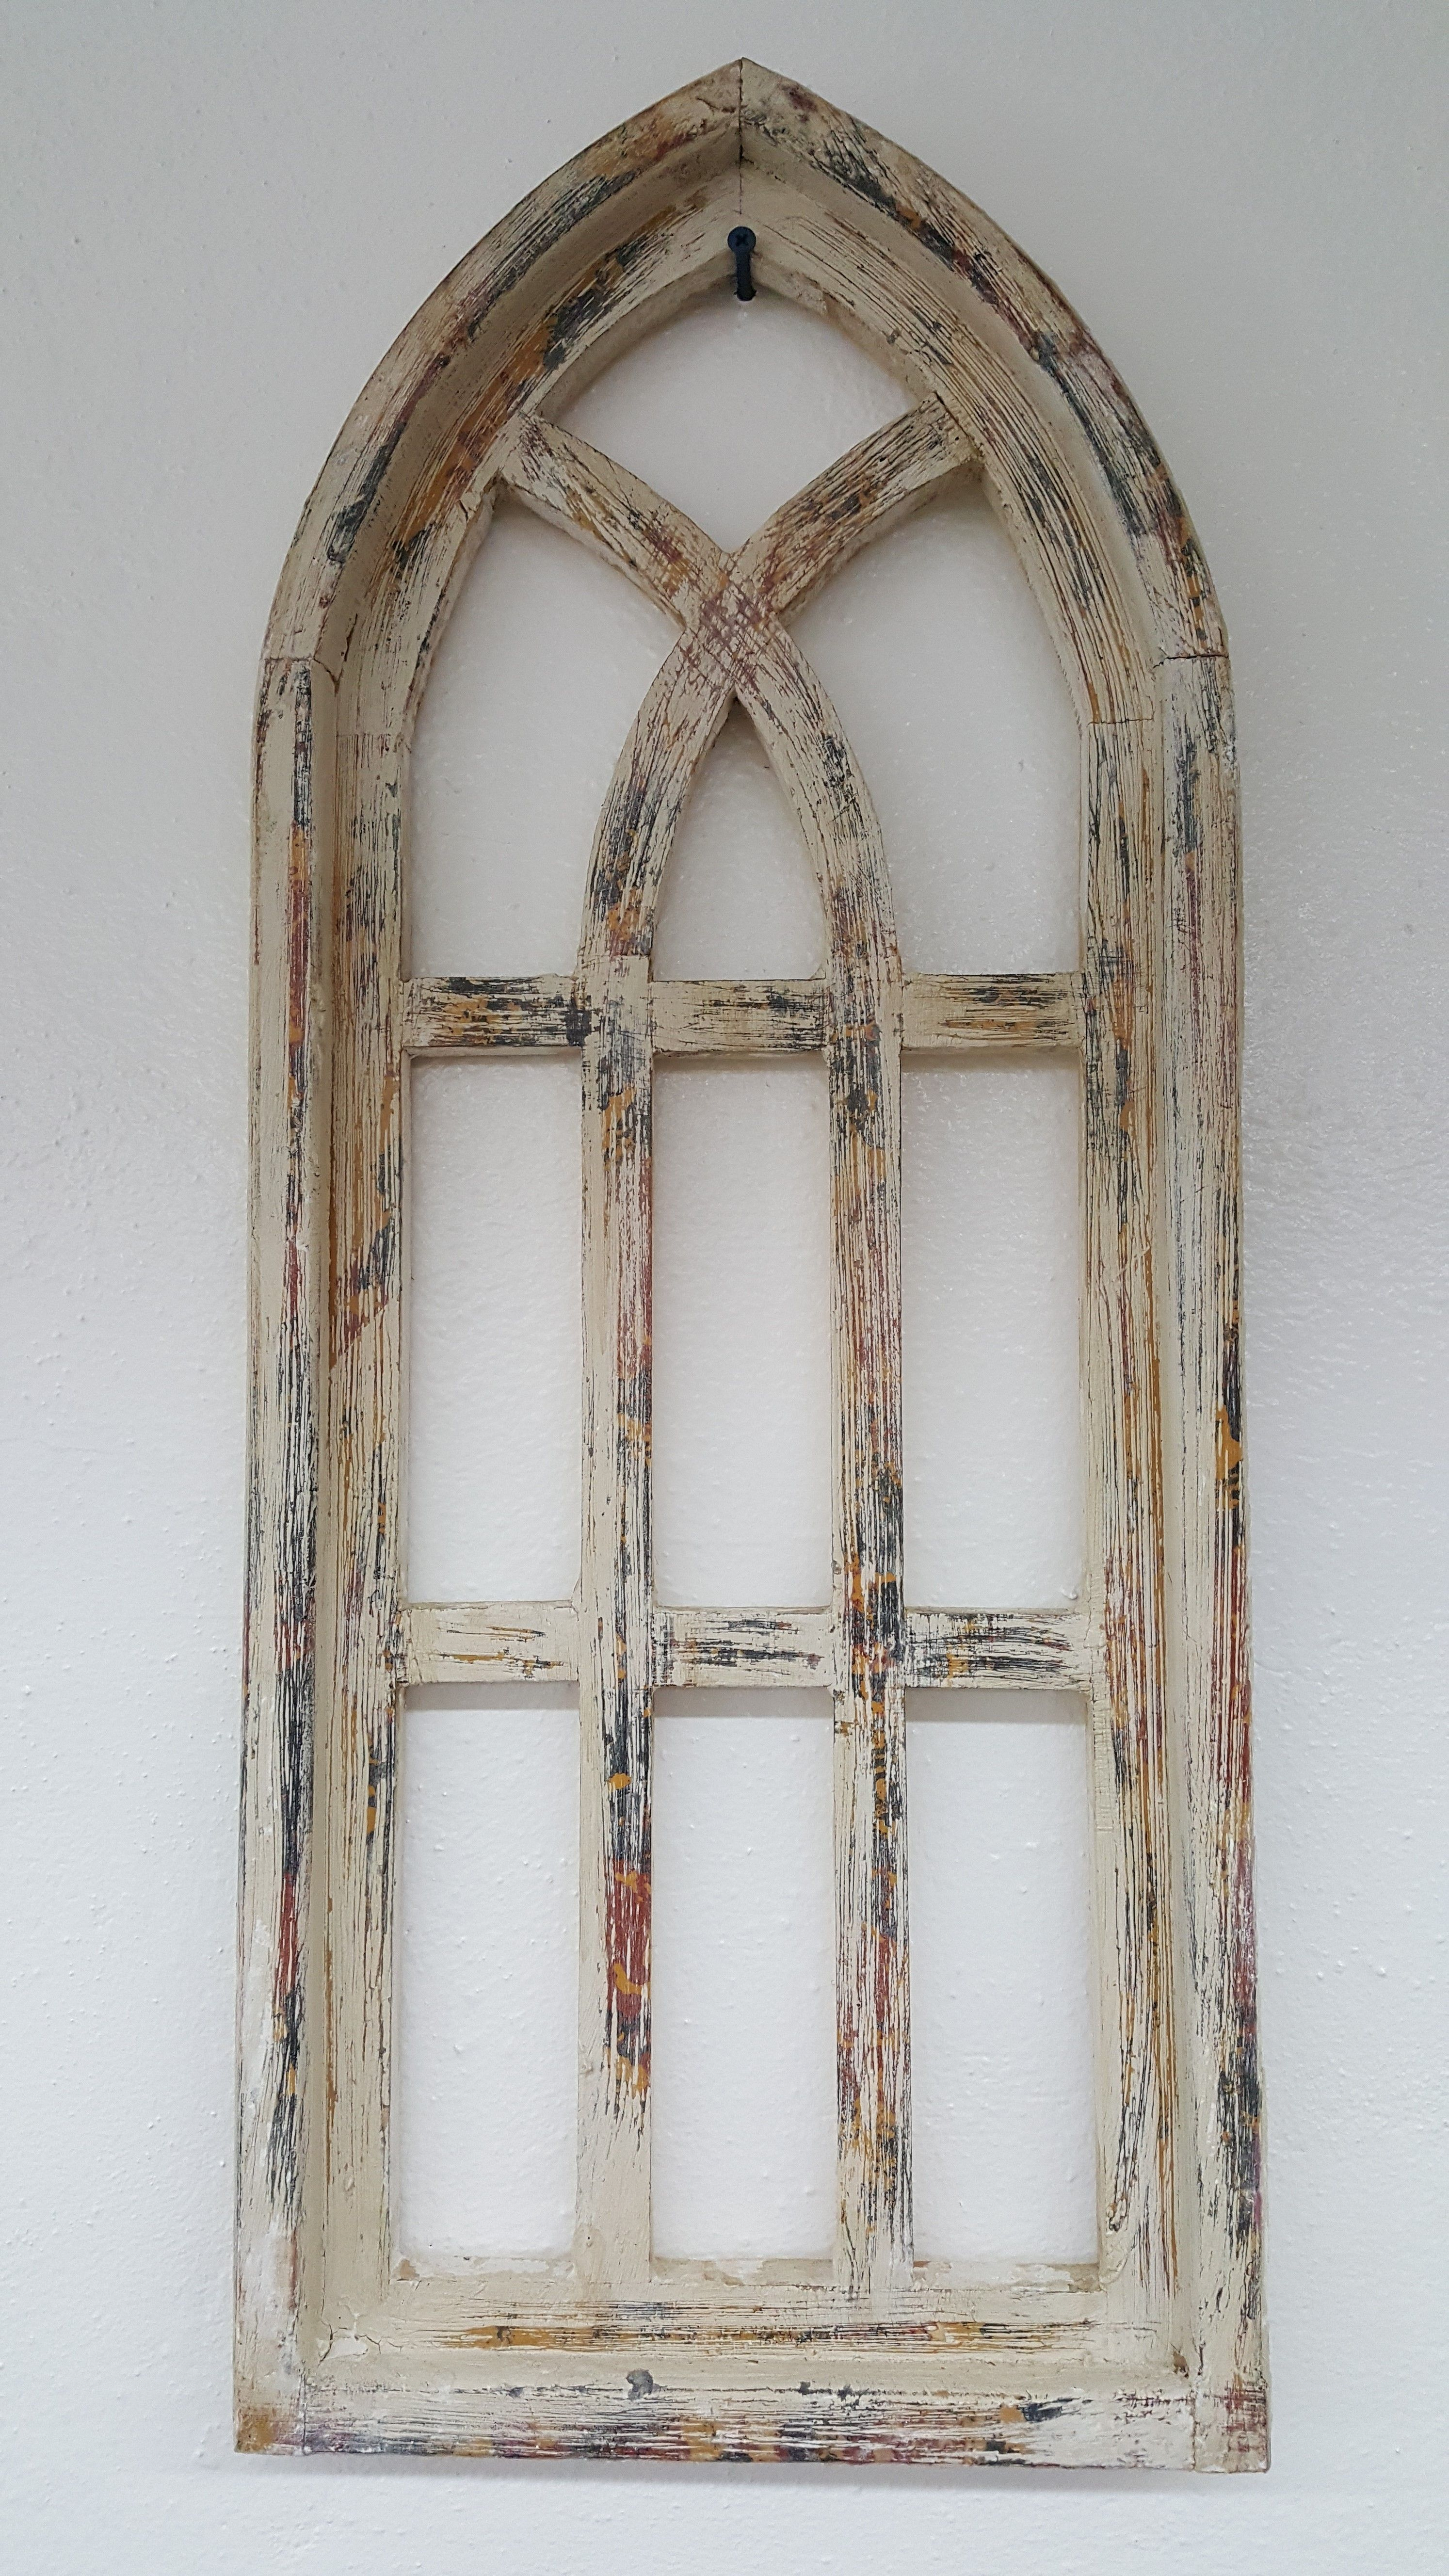 30 Small Distressed Wood Window Arch Available Great For Decorating The Walls For A Farmhouse Look Visit T Arched Wall Decor Wood Window Frame Rustic Window